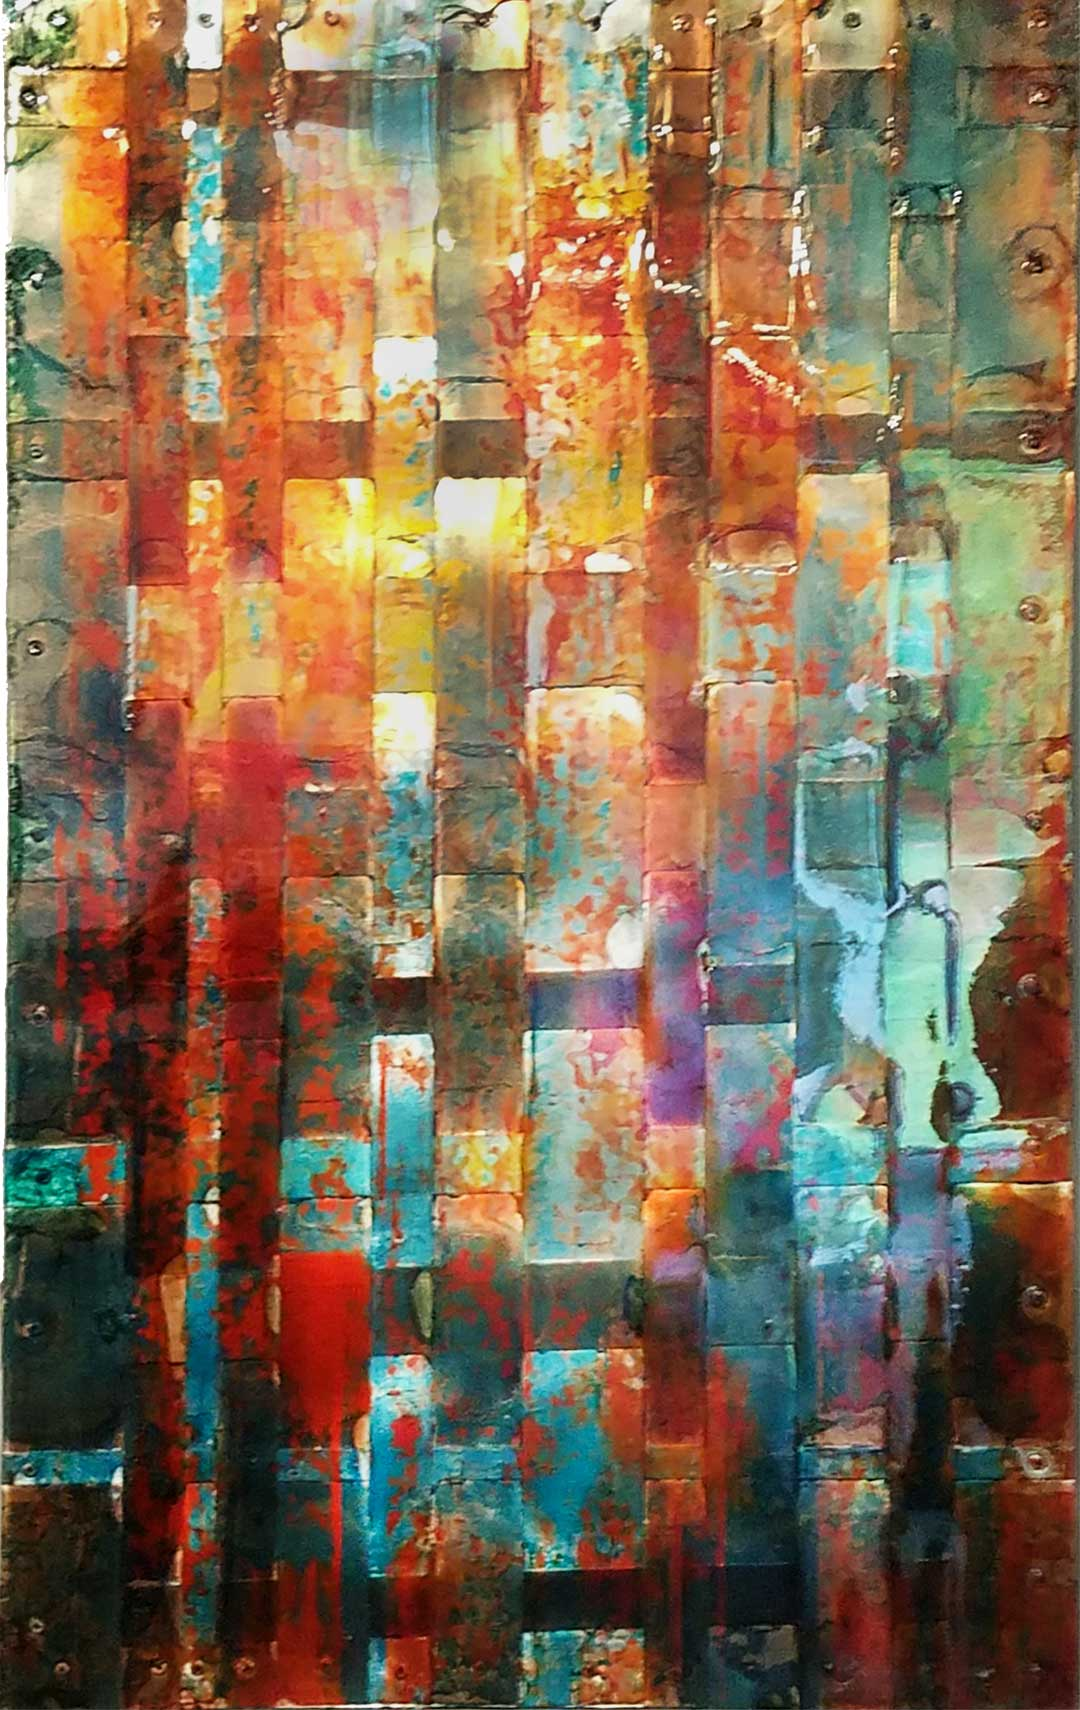 Patchwork Quilt Woven Copper Contemporary Abstract Art